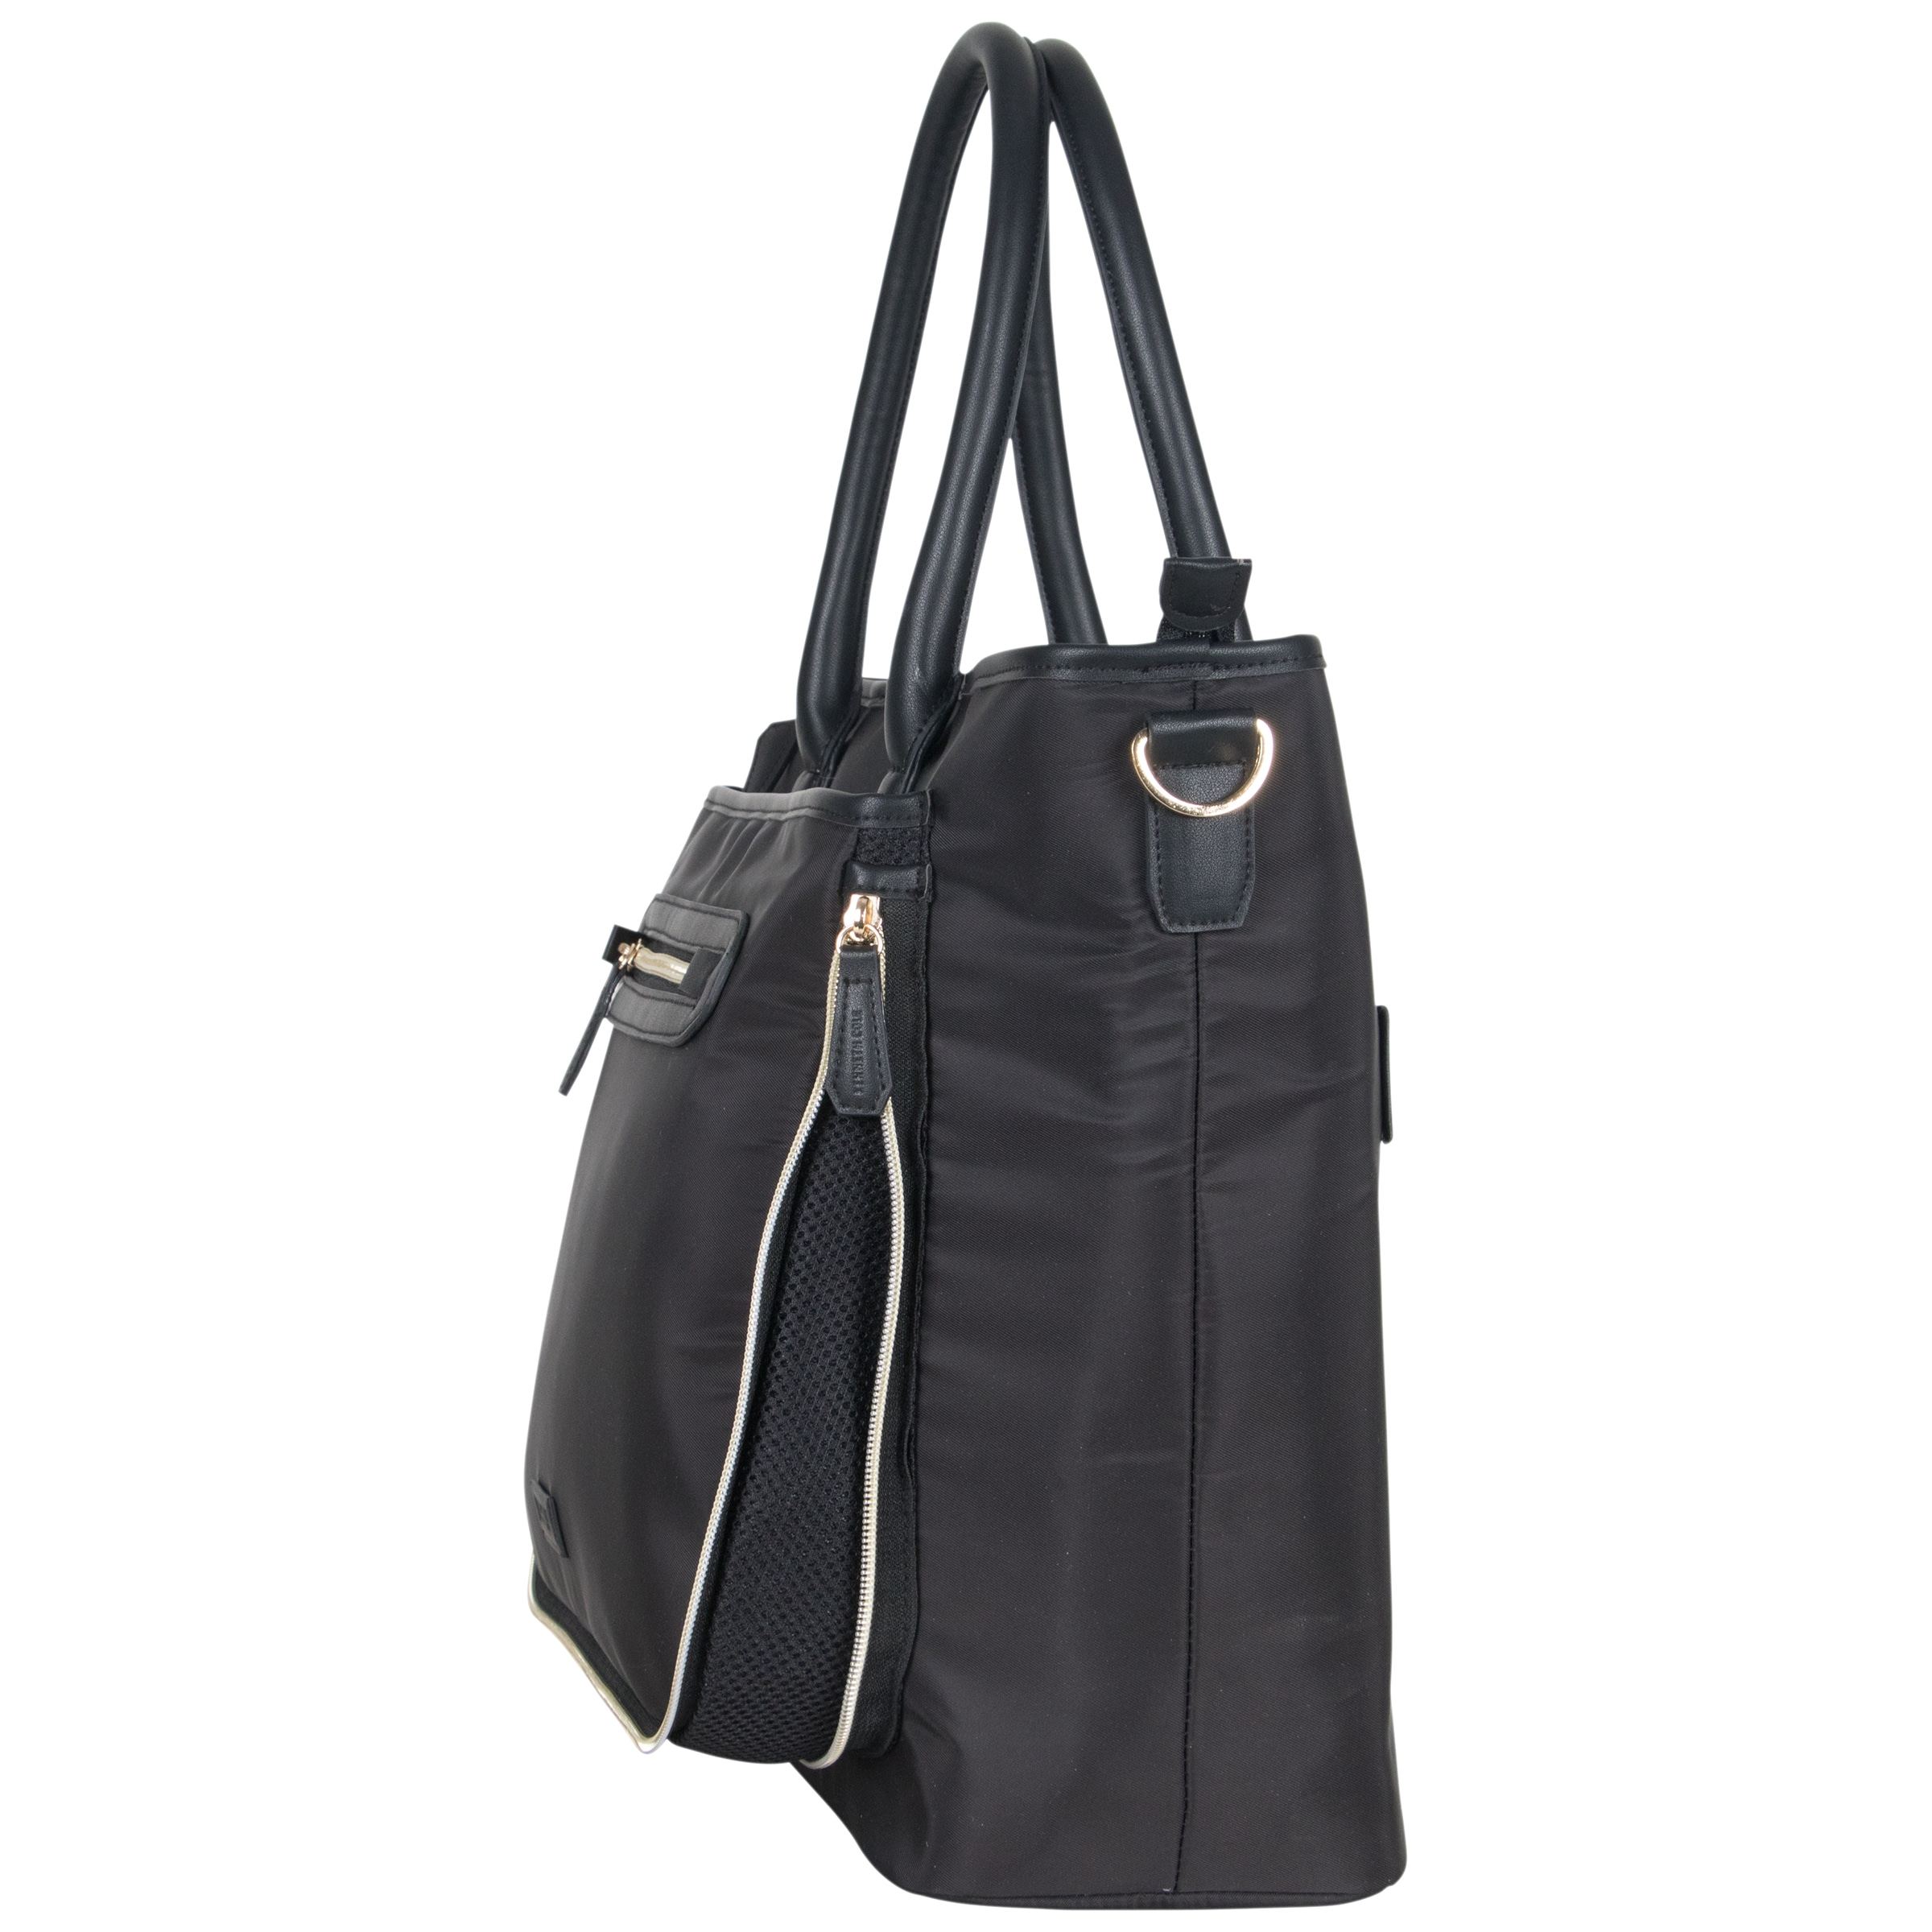 8494fd0bc594 Shop Kenneth Cole Reaction Silky Polyester Anti-theft 15-inch Laptop Travel Business  Tote Bag - Free Shipping Today - Overstock - 20908312